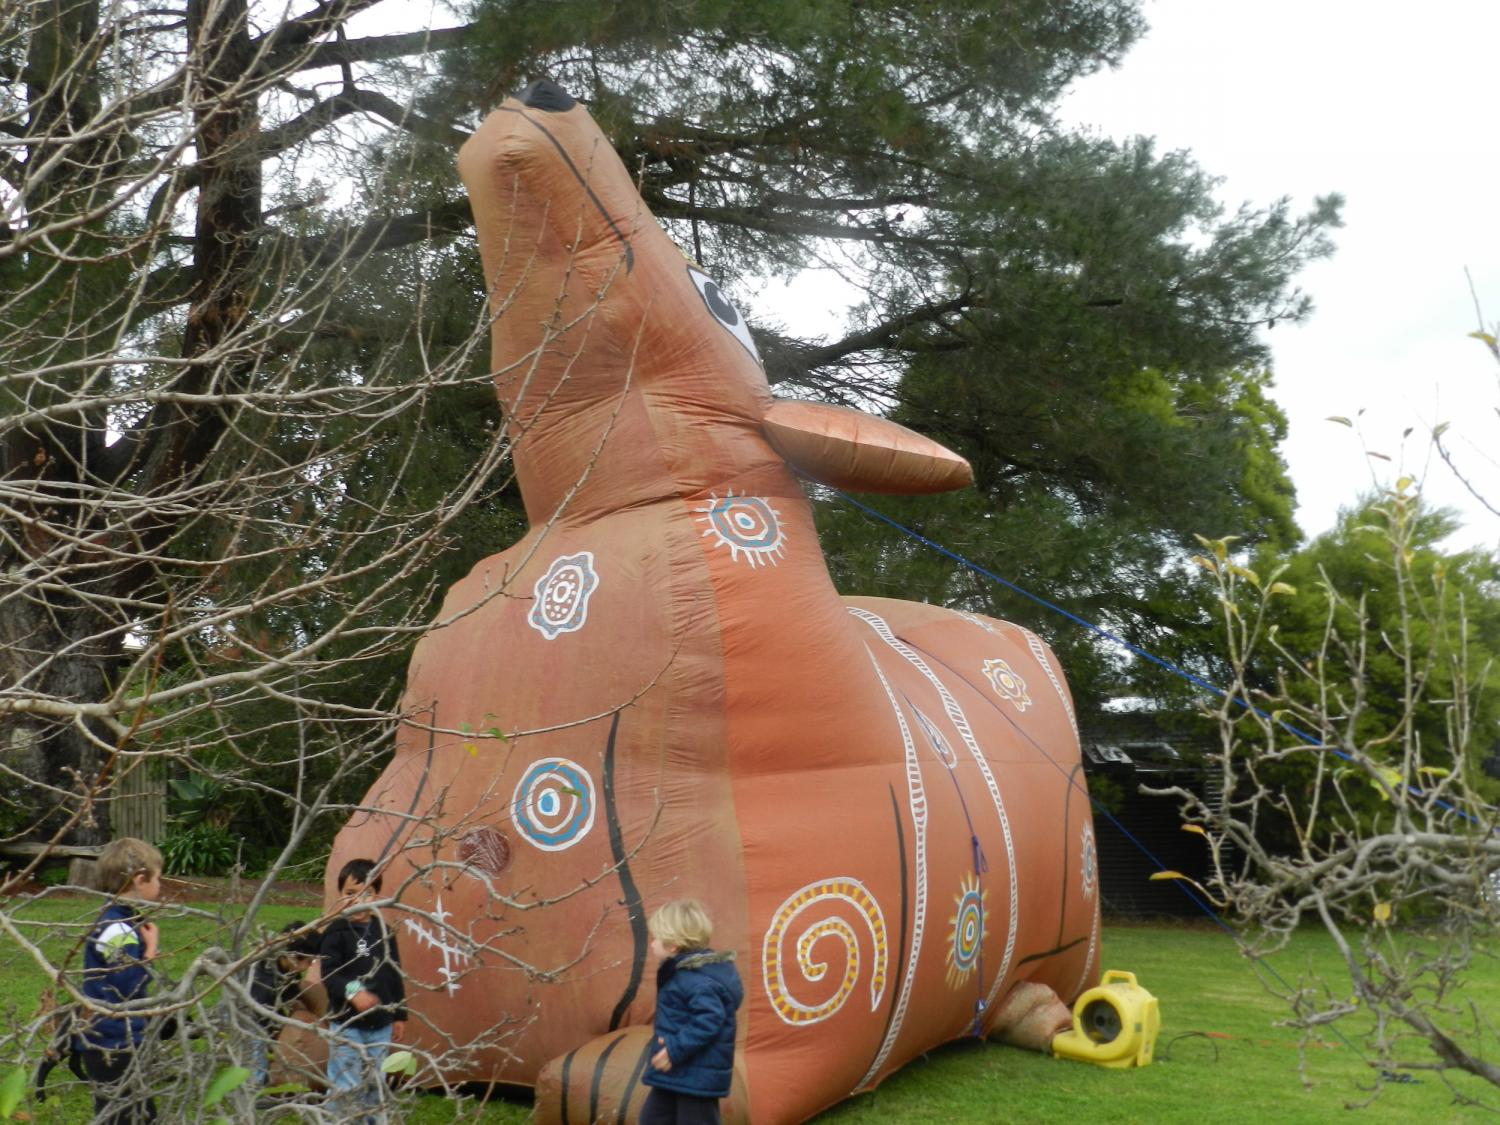 Giant inflatable dingo - Evelyn Roth